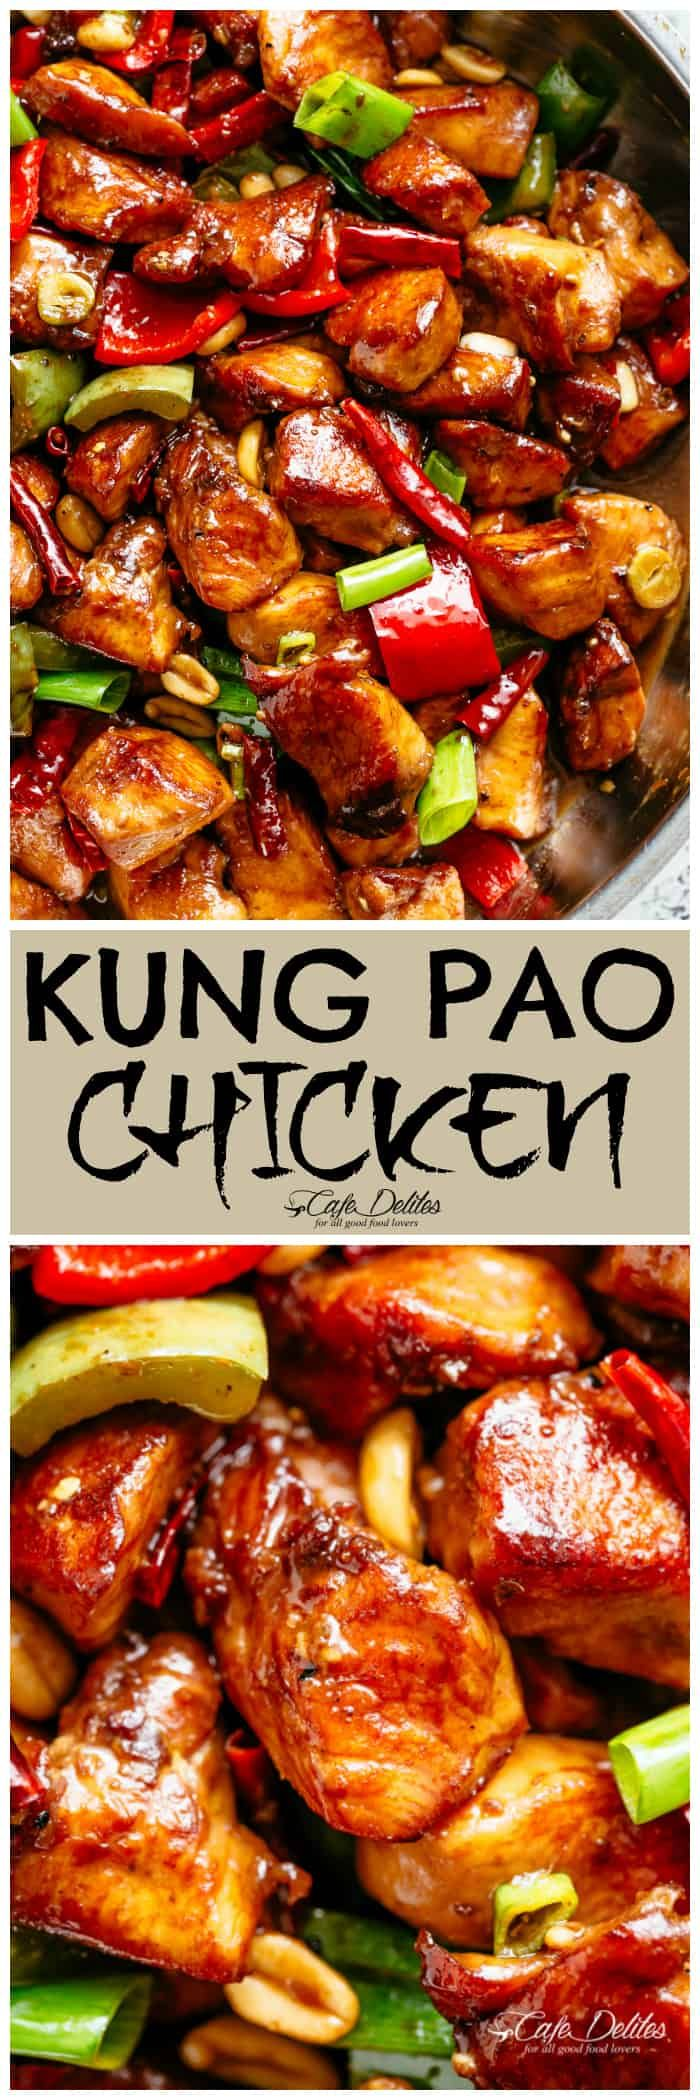 Kung Pao Chicken better than Chinese take out! With crisp-tender chicken pieces and some crunchy veggies thrown in, this is one Kung Pao chicken recipe hard to pass up! | cafedelites.com #kungpao #chicken #recipes #chinese